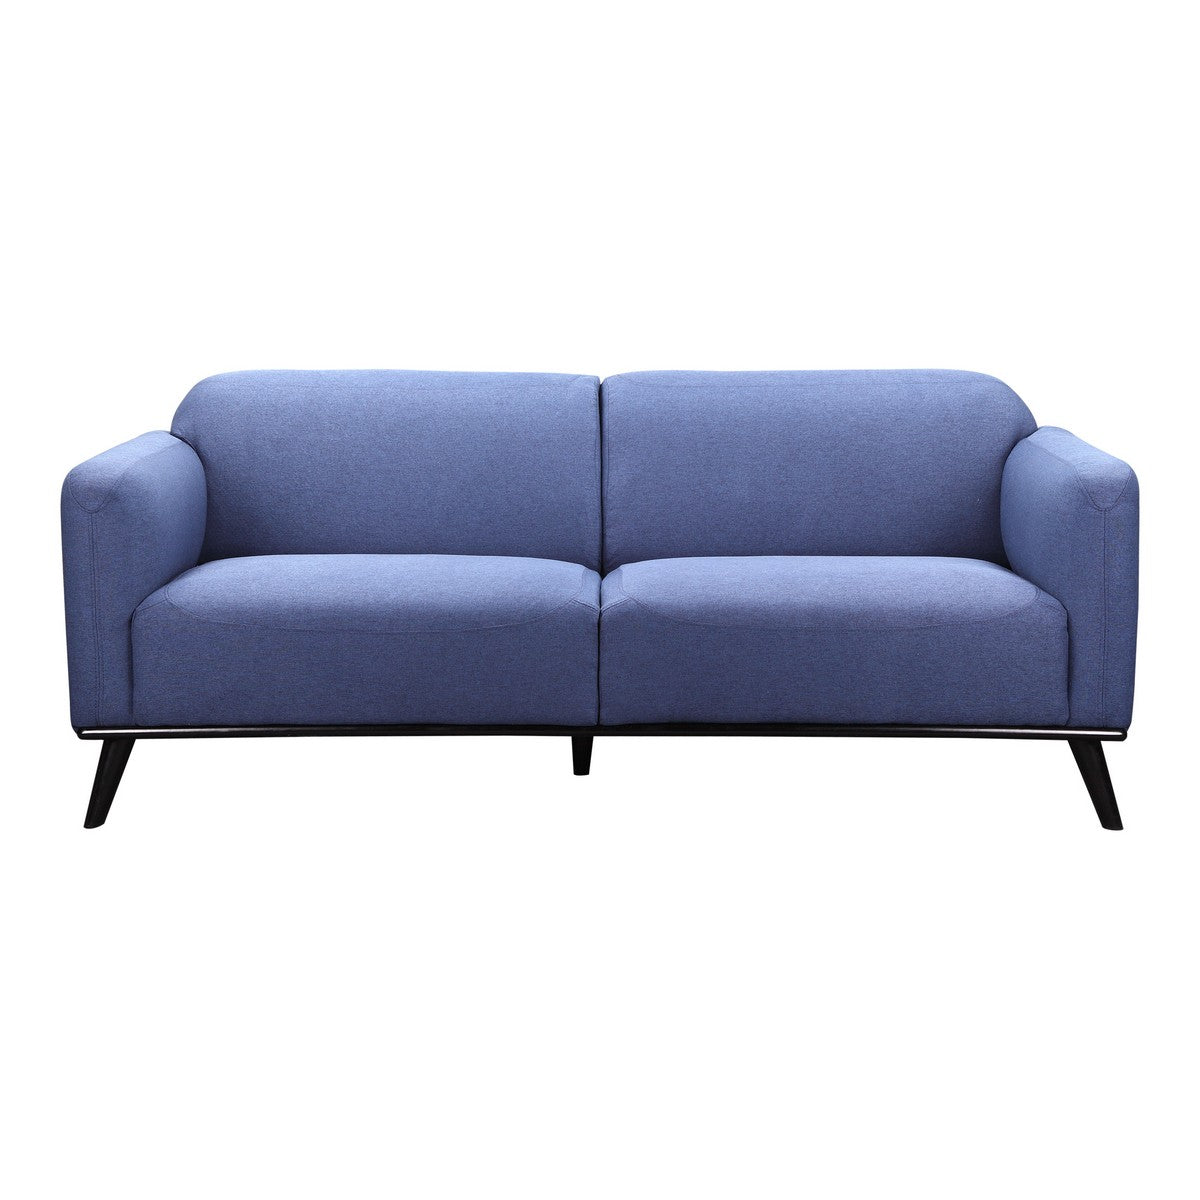 Moe's Home Collection Peppy Sofa Blue - FW-1006-26 - Moe's Home Collection - Sofas - Minimal And Modern - 1